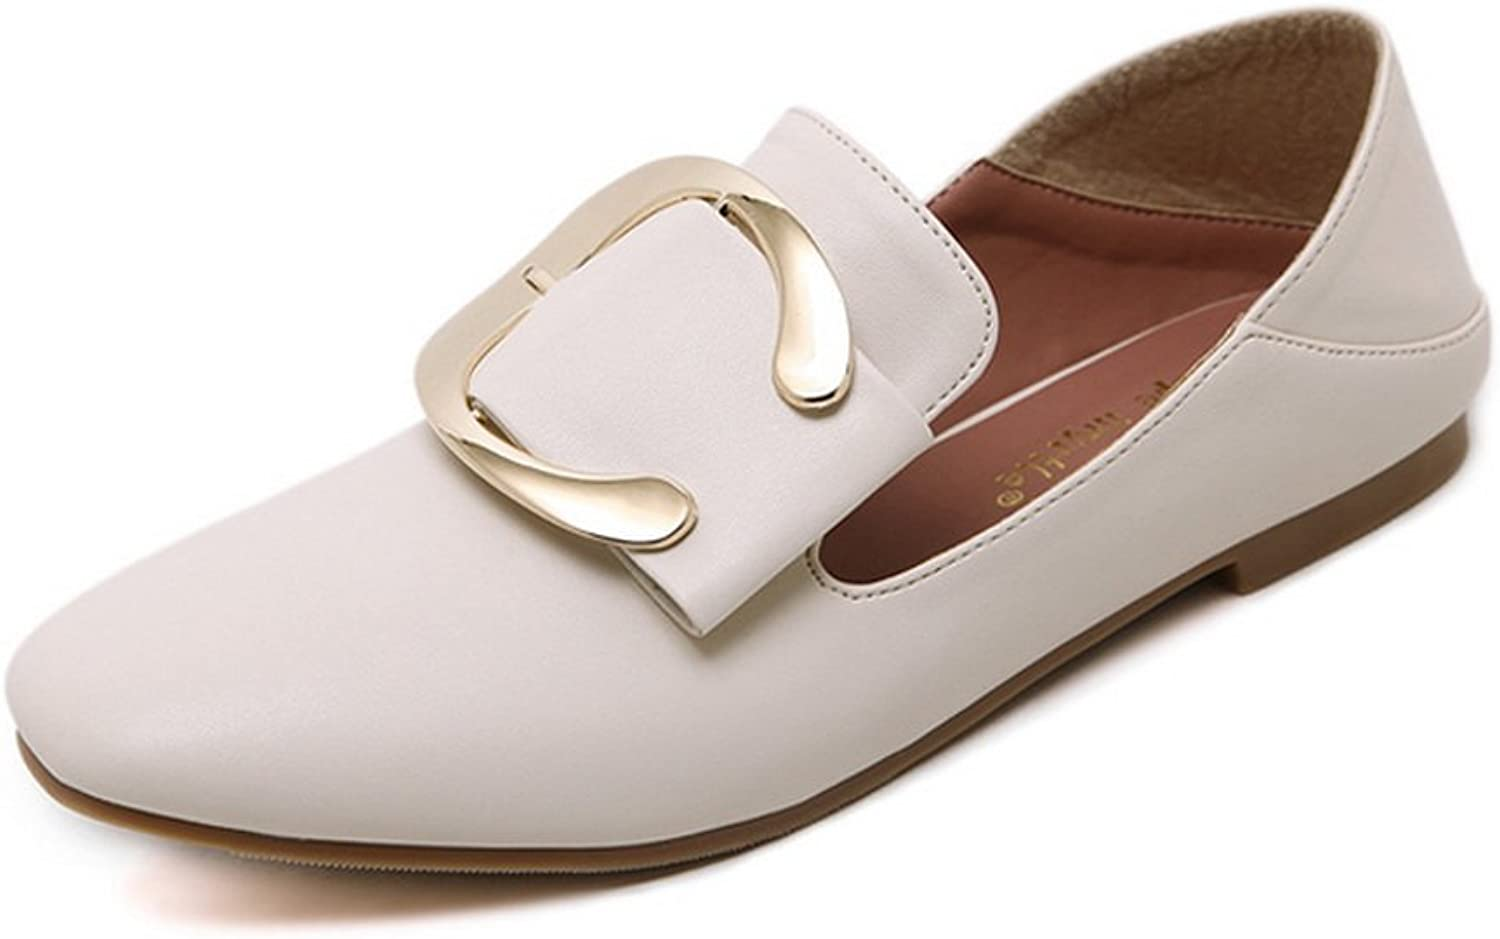 1TO9 Womens Buckle Square-Toe No-Closure Beige Urethane Flats shoes - 5 B(M) US